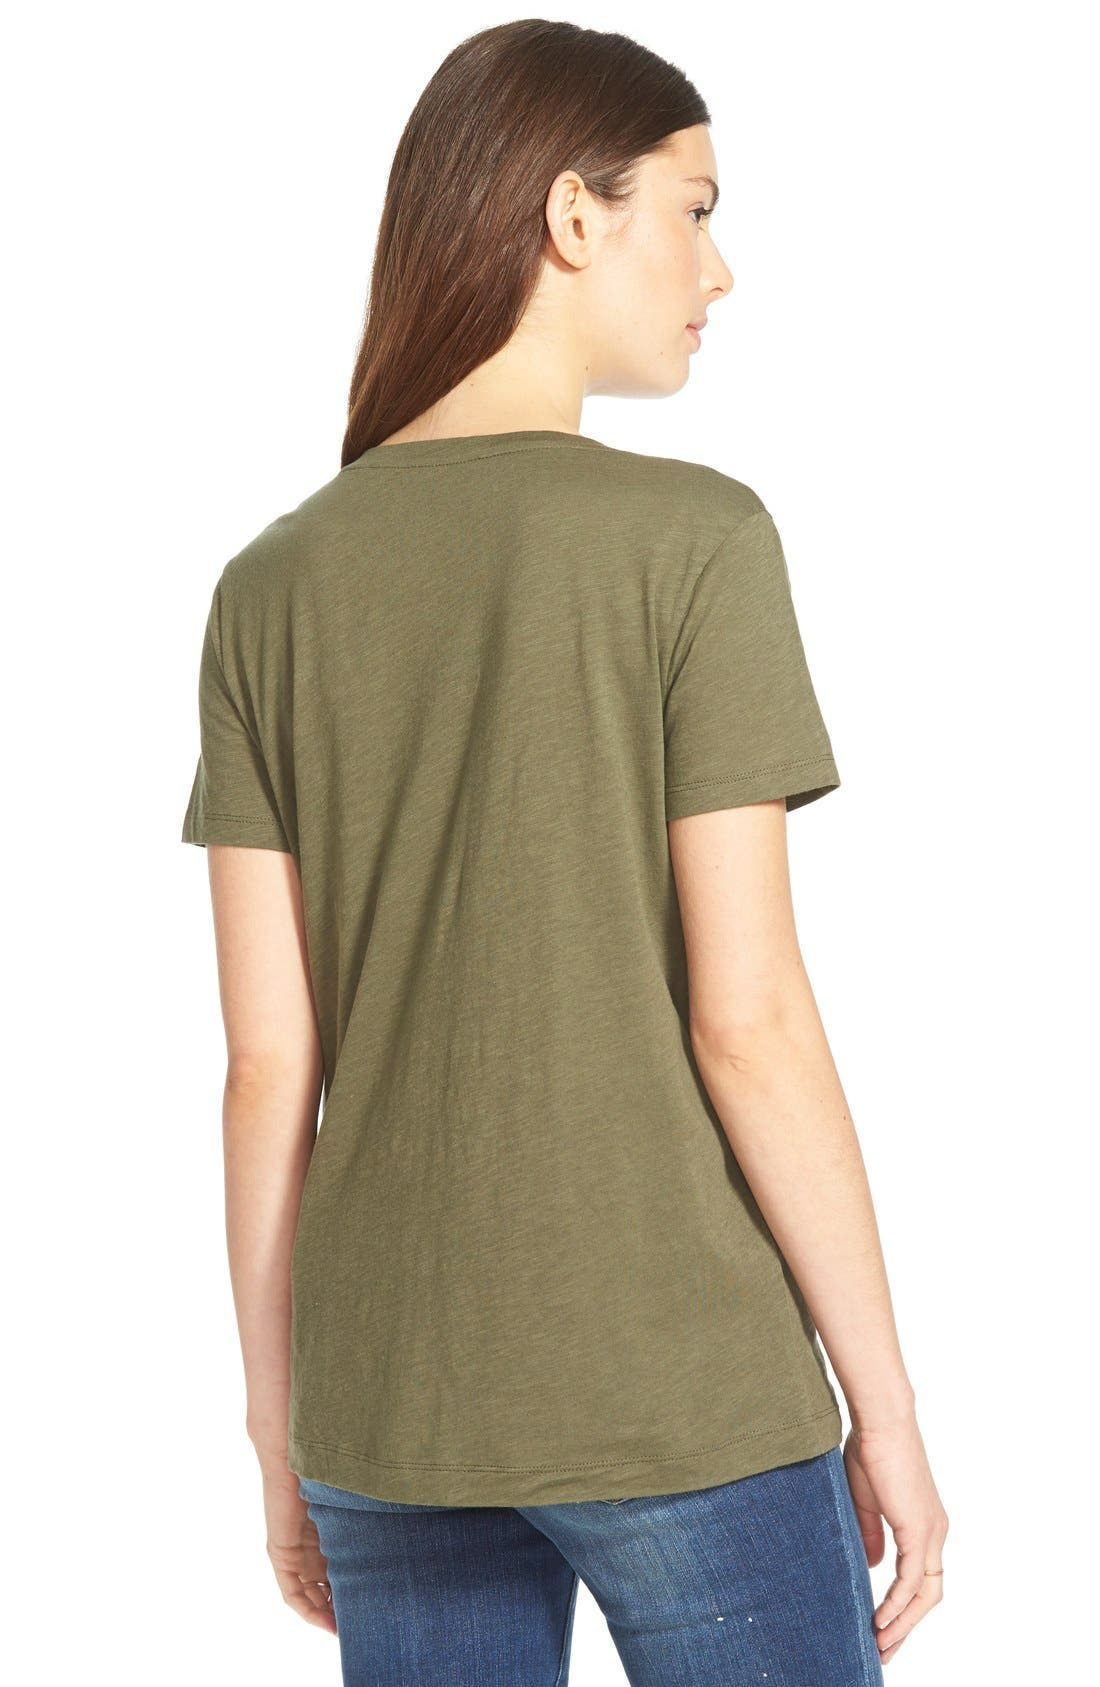 Alternate Image 2  - Madewell 'Whisper' Cotton V-Neck Pocket Tee